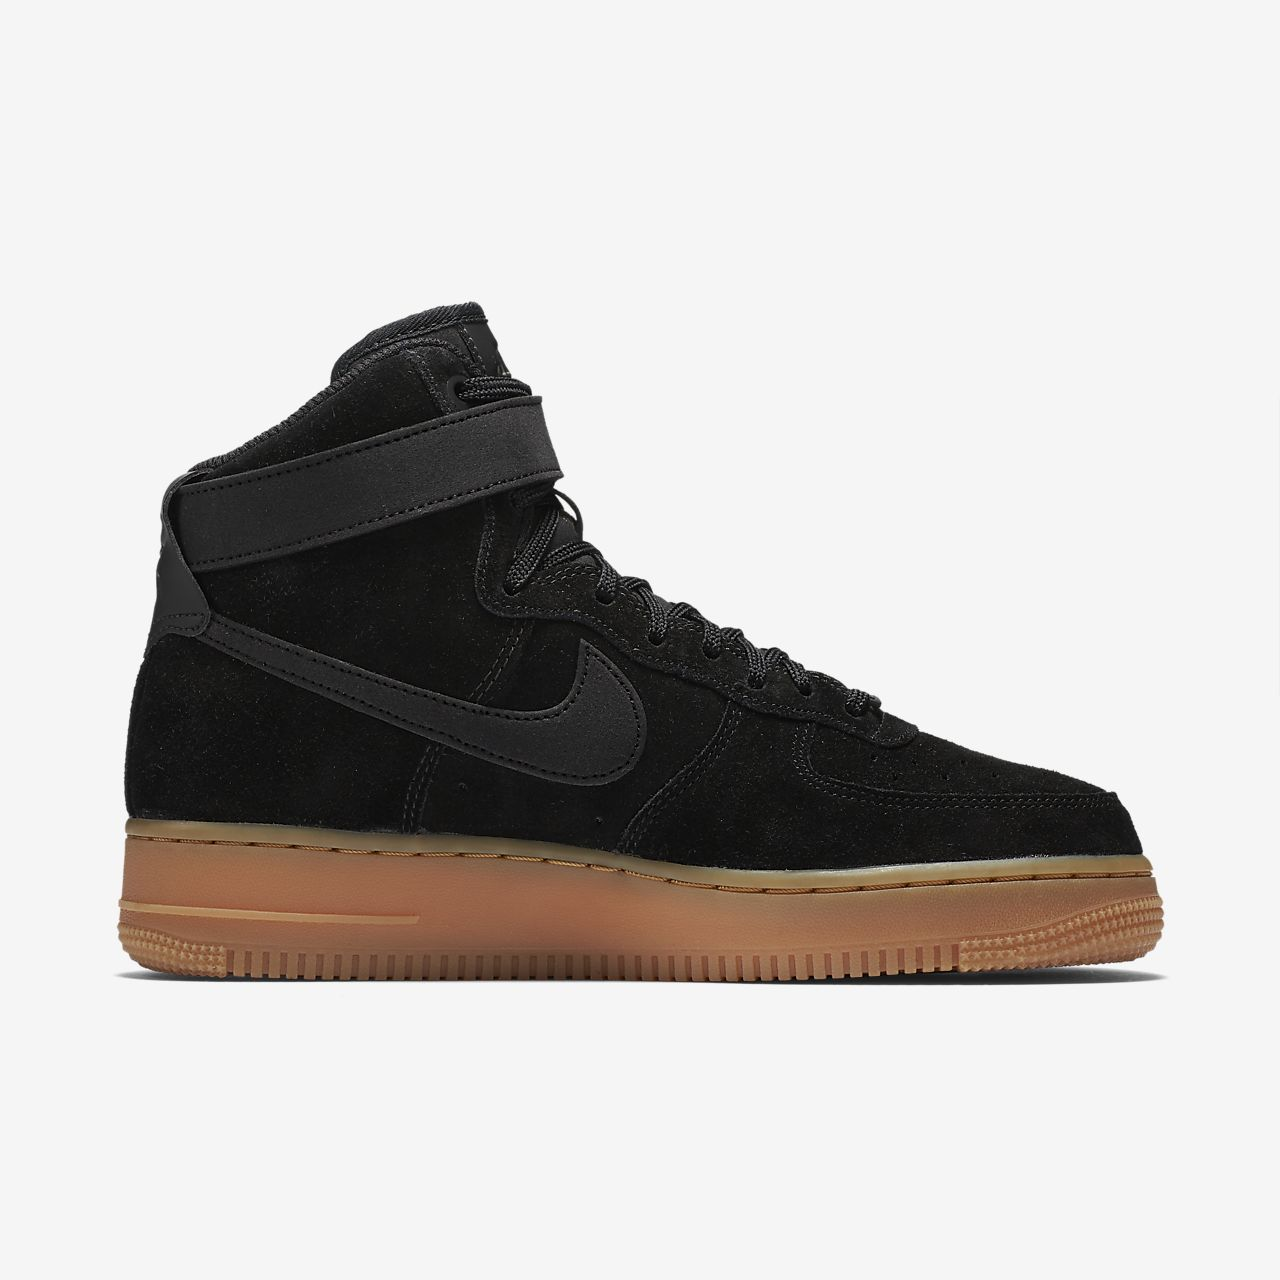 nike air force 1 mid gum sole nz